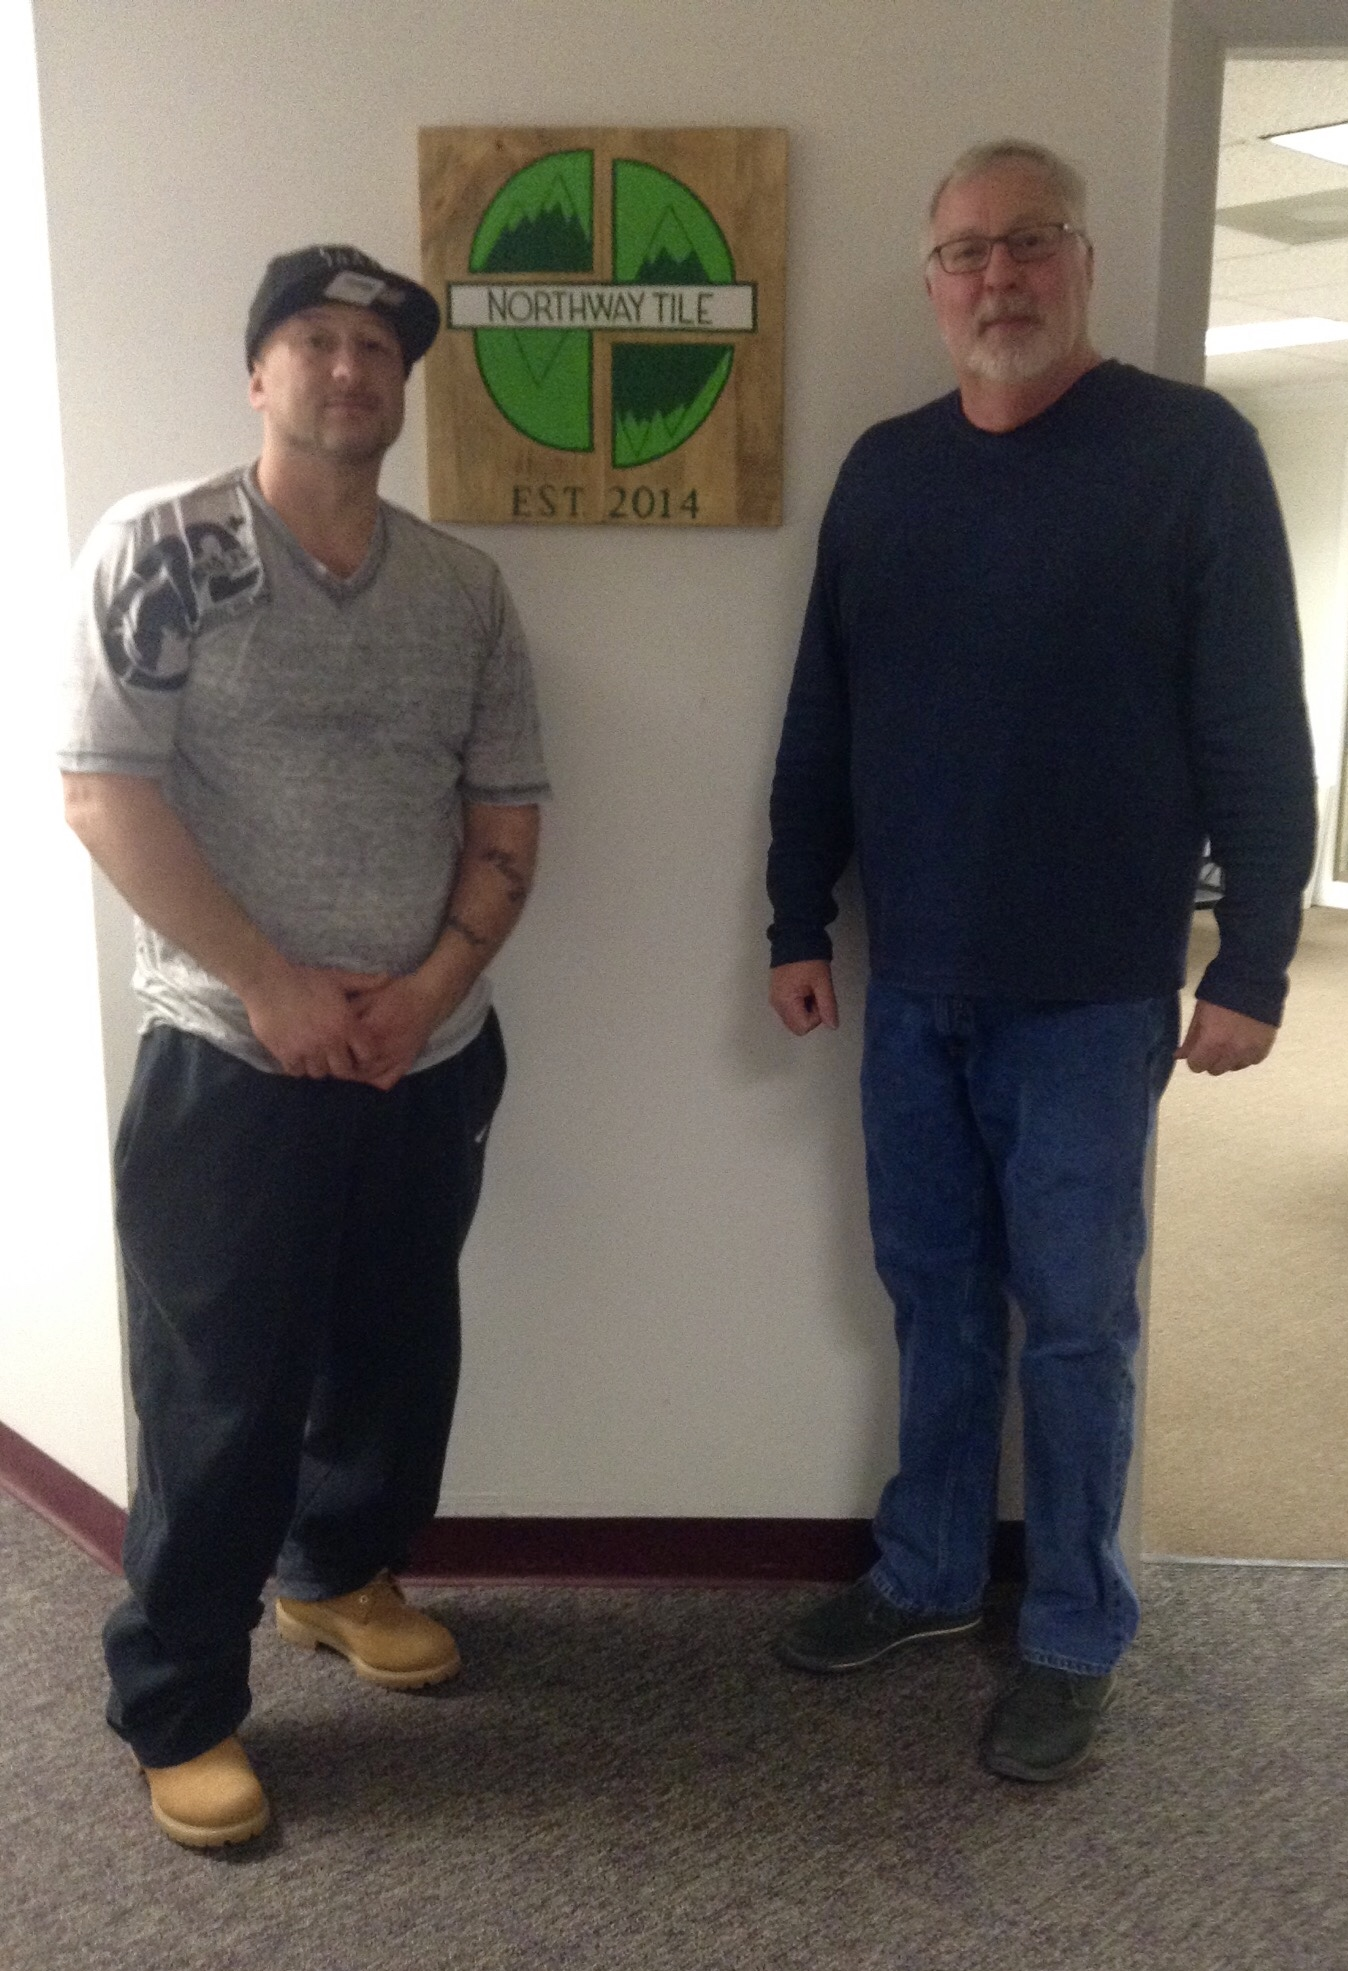 Mark (left) & Bob (right) at Northway Tile HQ